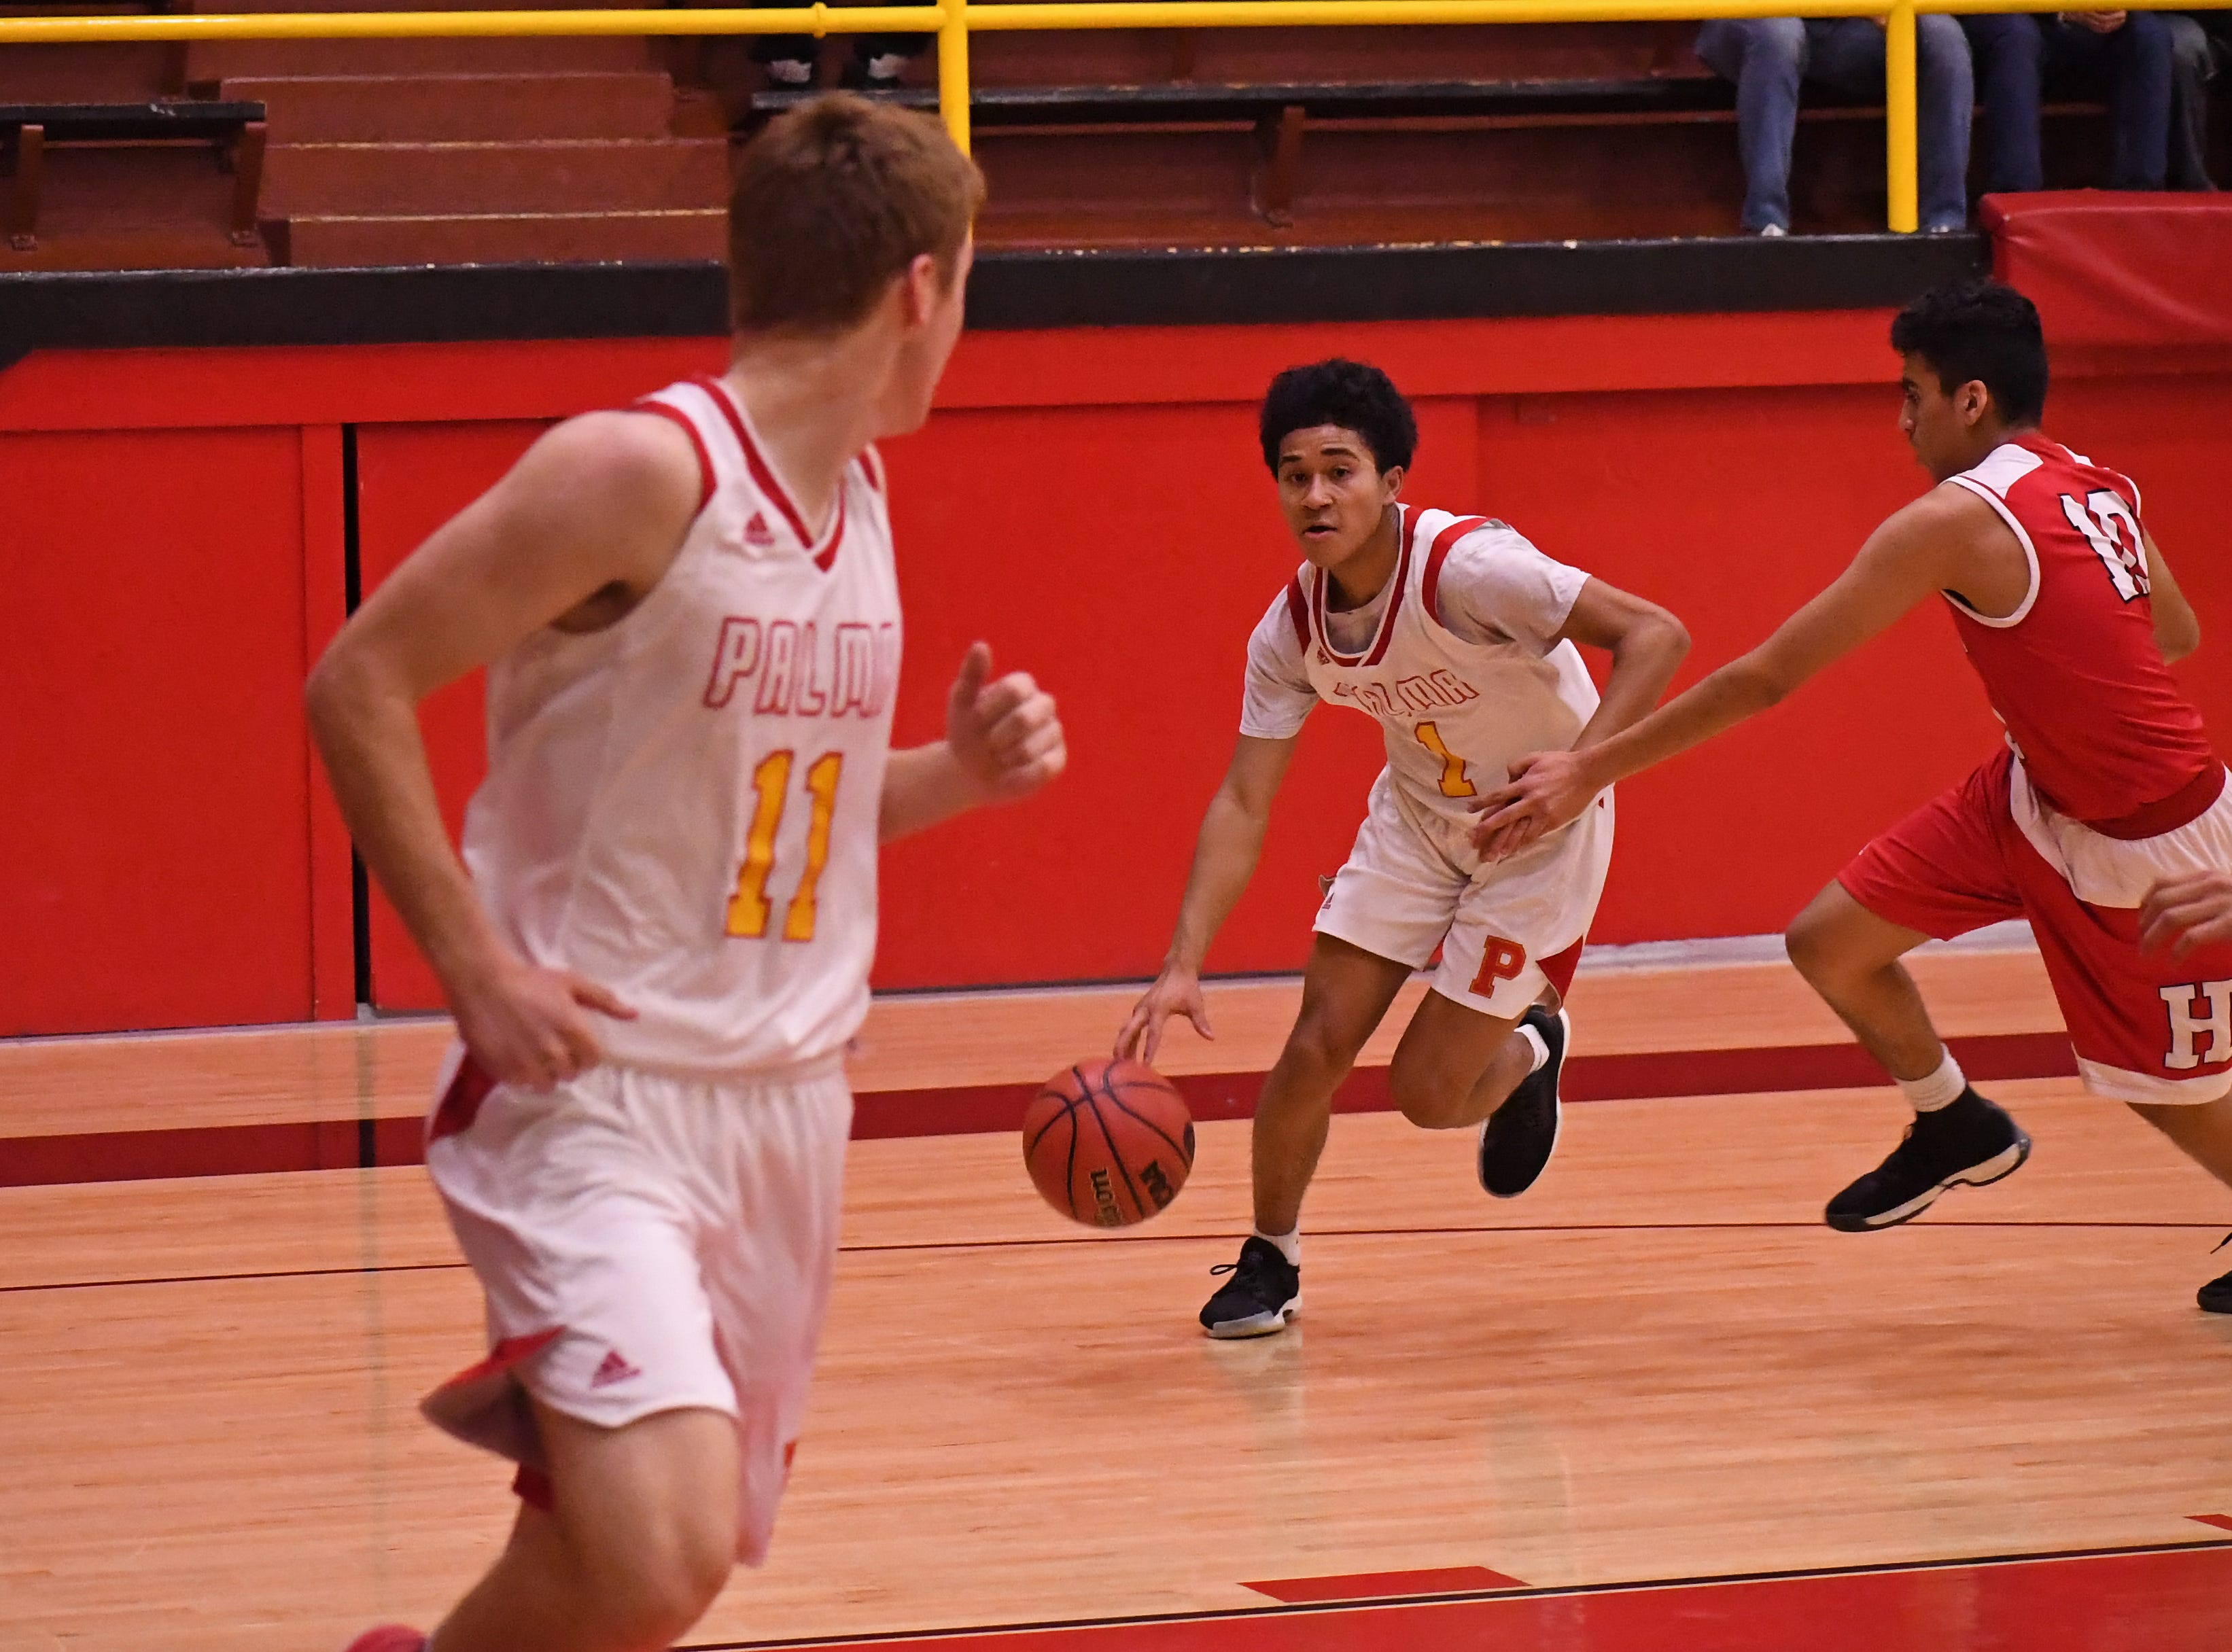 Palma guard Nate Jean-Pierre (1) drives past his defender and cuts to the basket.